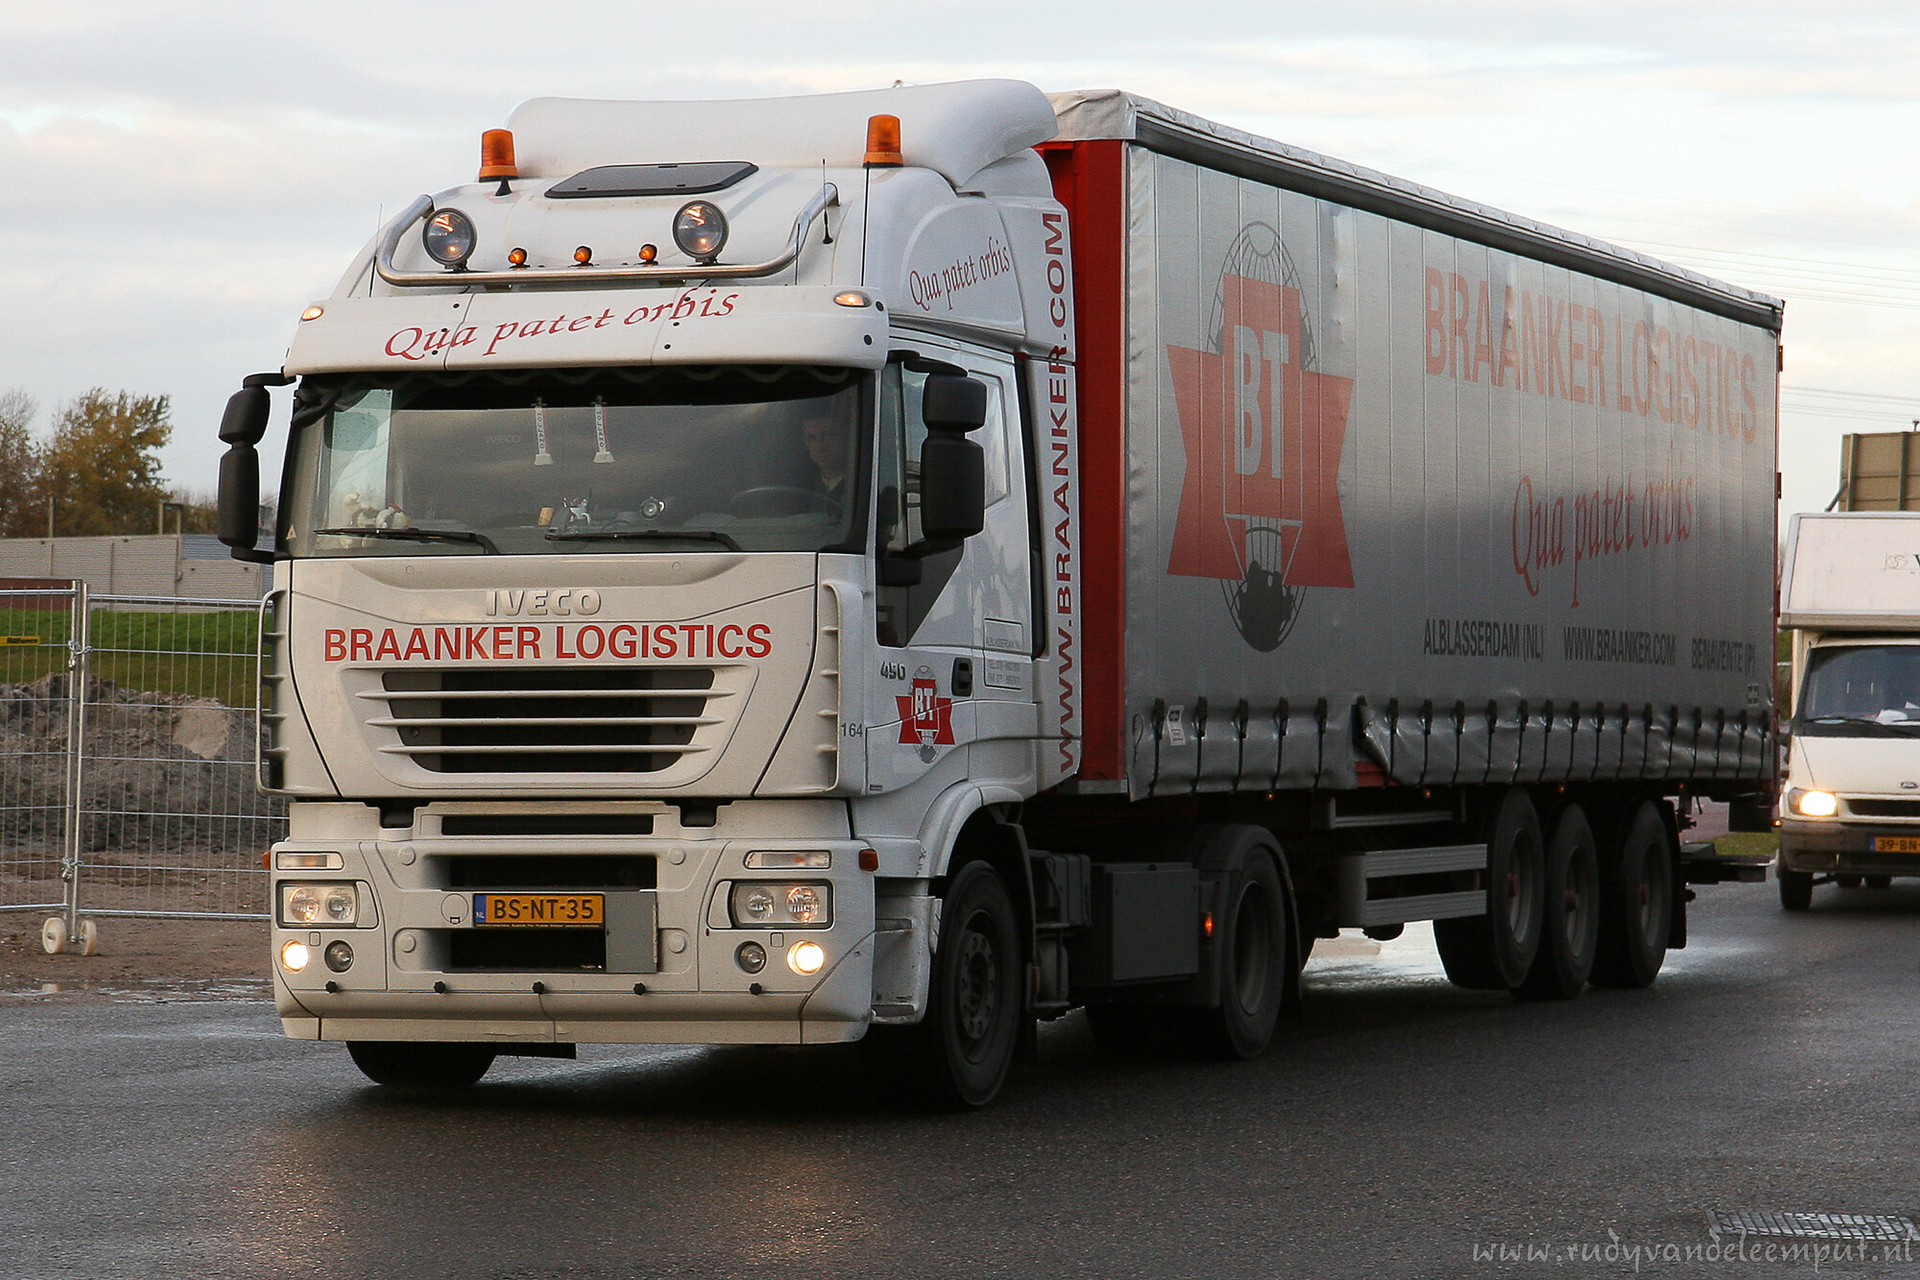 2006 | BS-NT-35 | IVECO Stralis